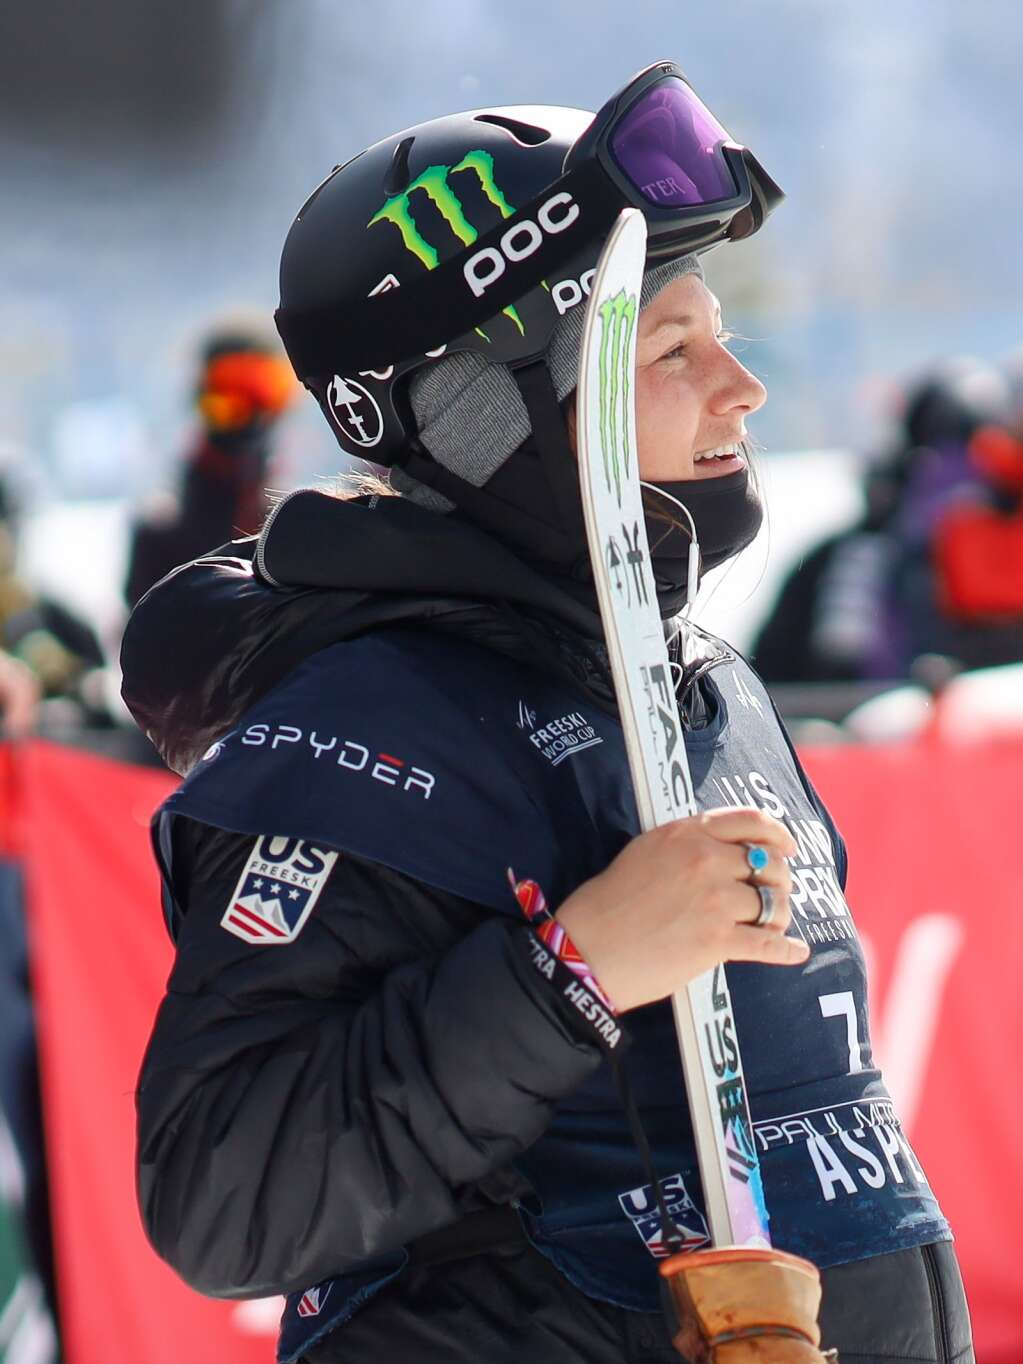 Devin Logan awaits her score during the women's freeski halfpipe finals of the U.S. Grand Prix on Sunday, March 21, 2021, at Buttermilk Ski Area in Aspen. Photo by Austin Colbert/The Aspen Times.